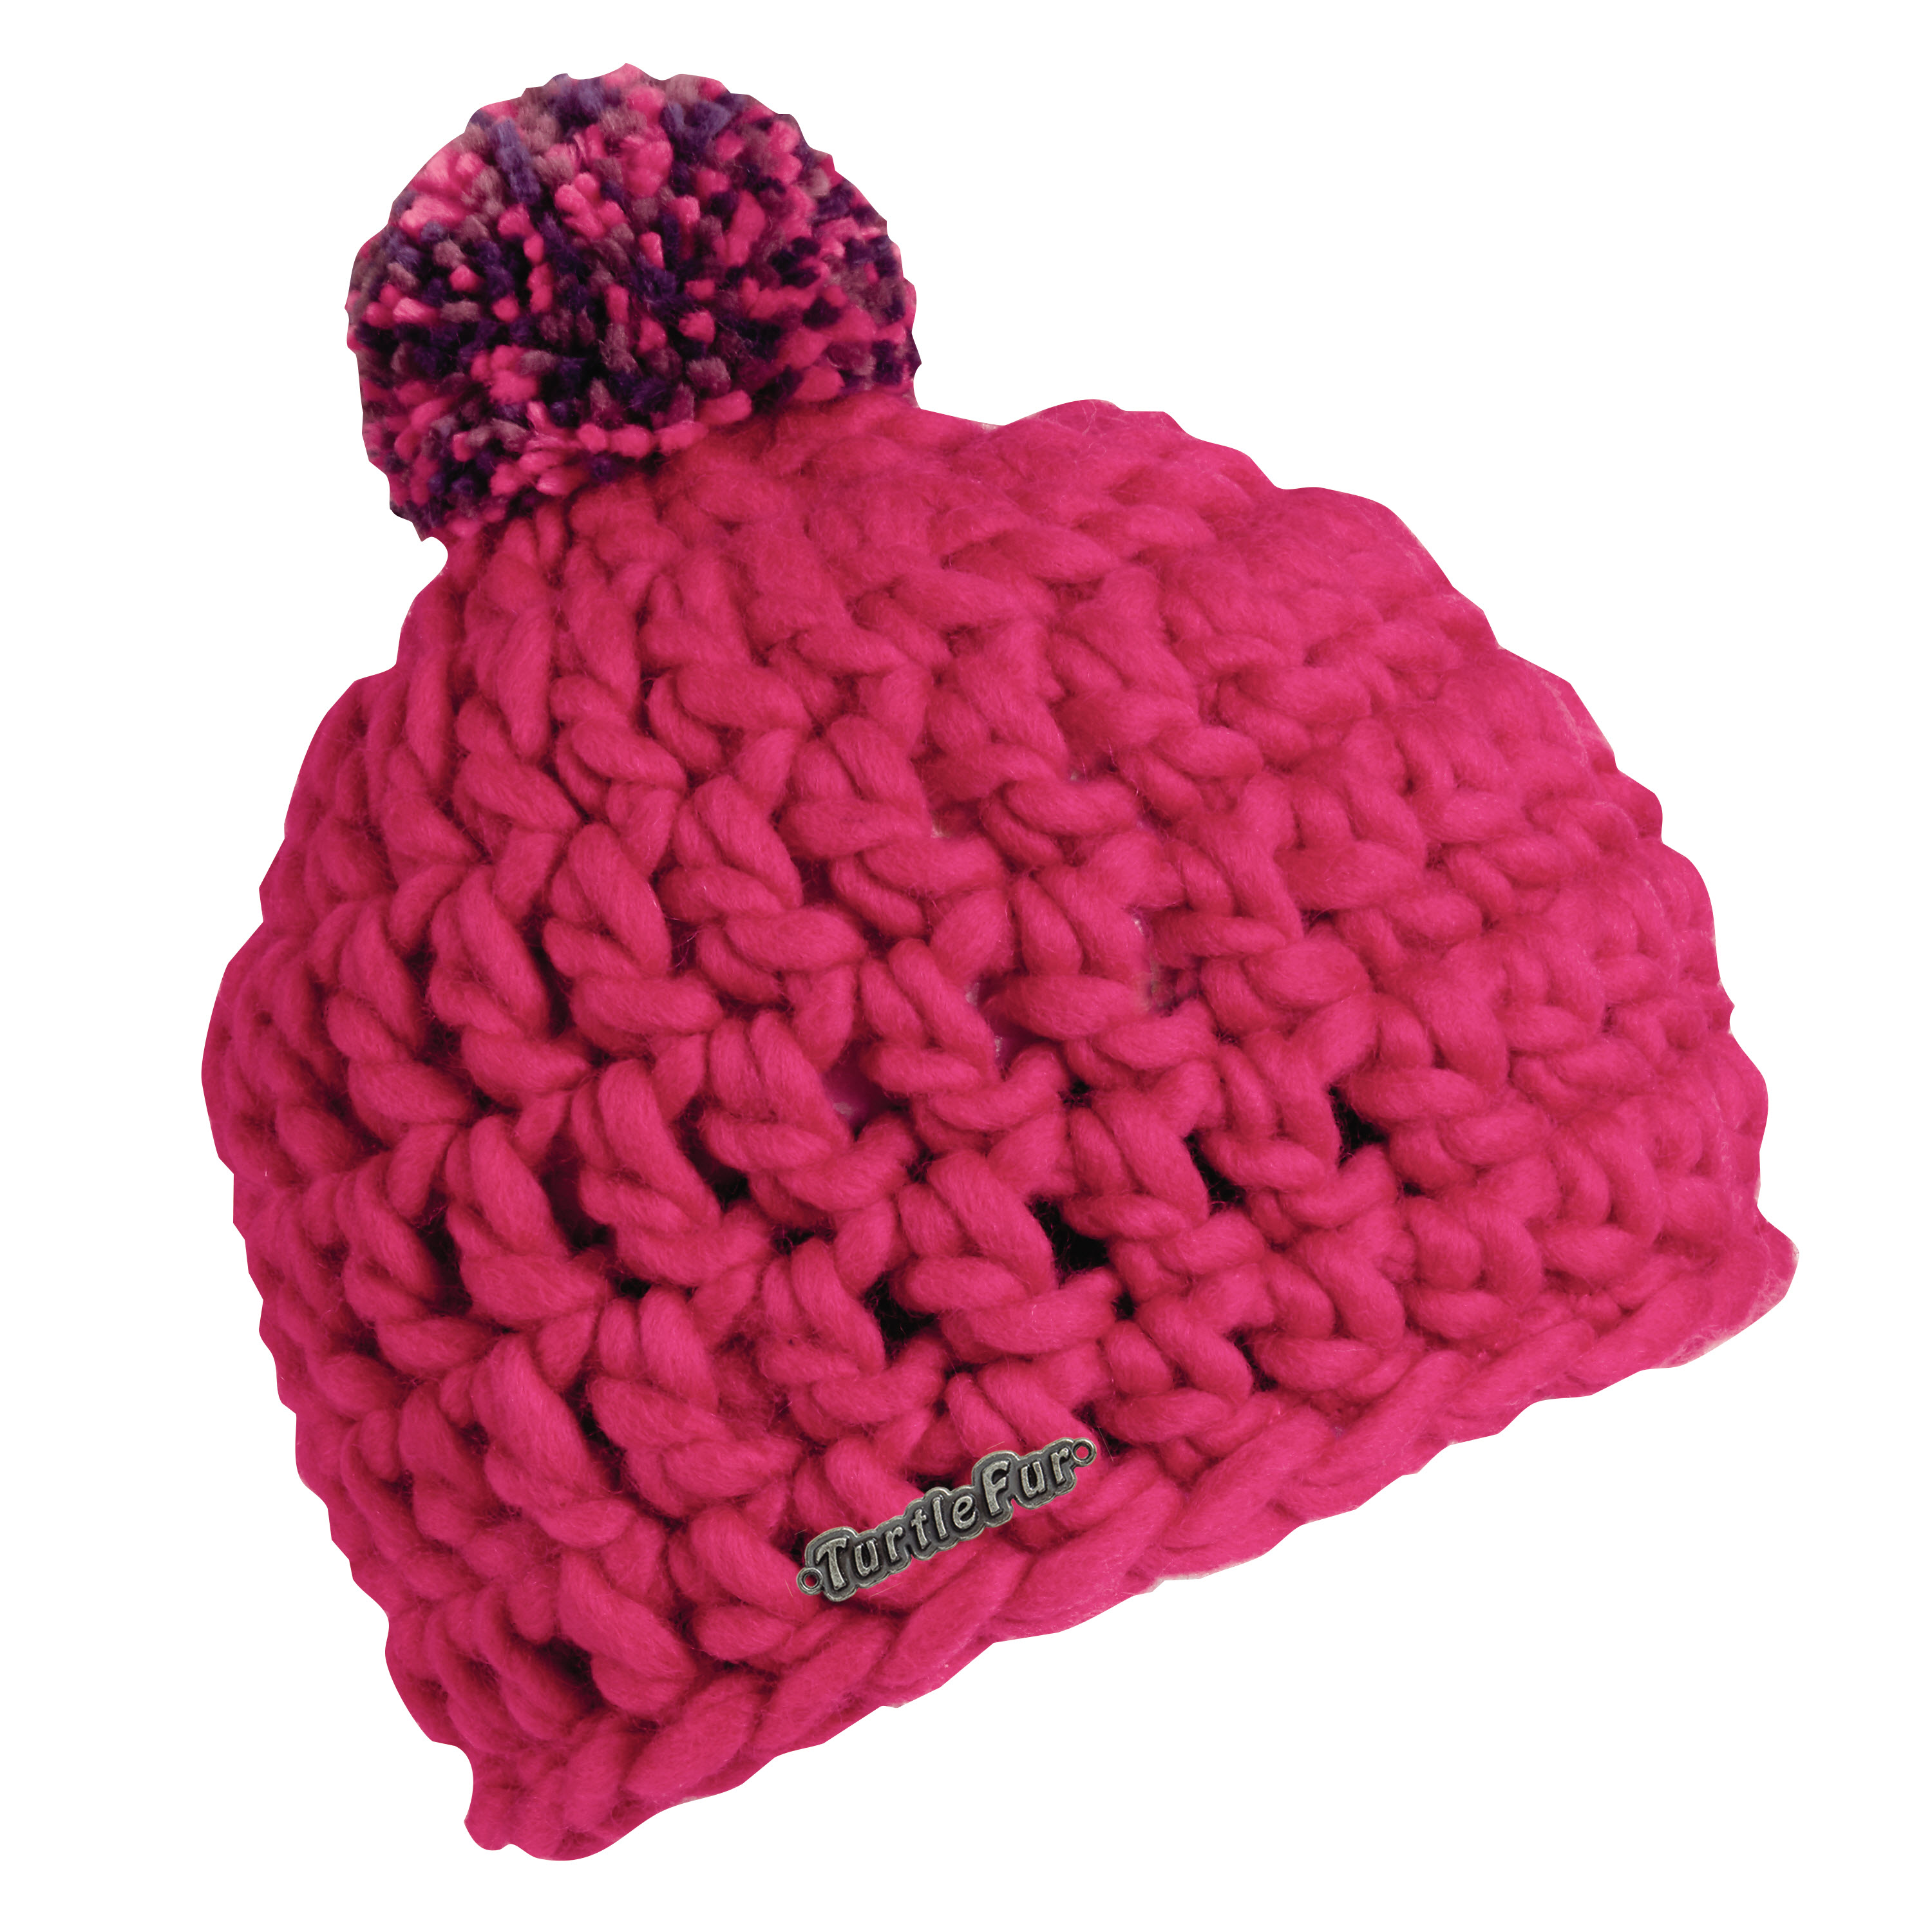 Turtle Fur Rove Women's Wool Blend Crocheted Pom Winter Hat